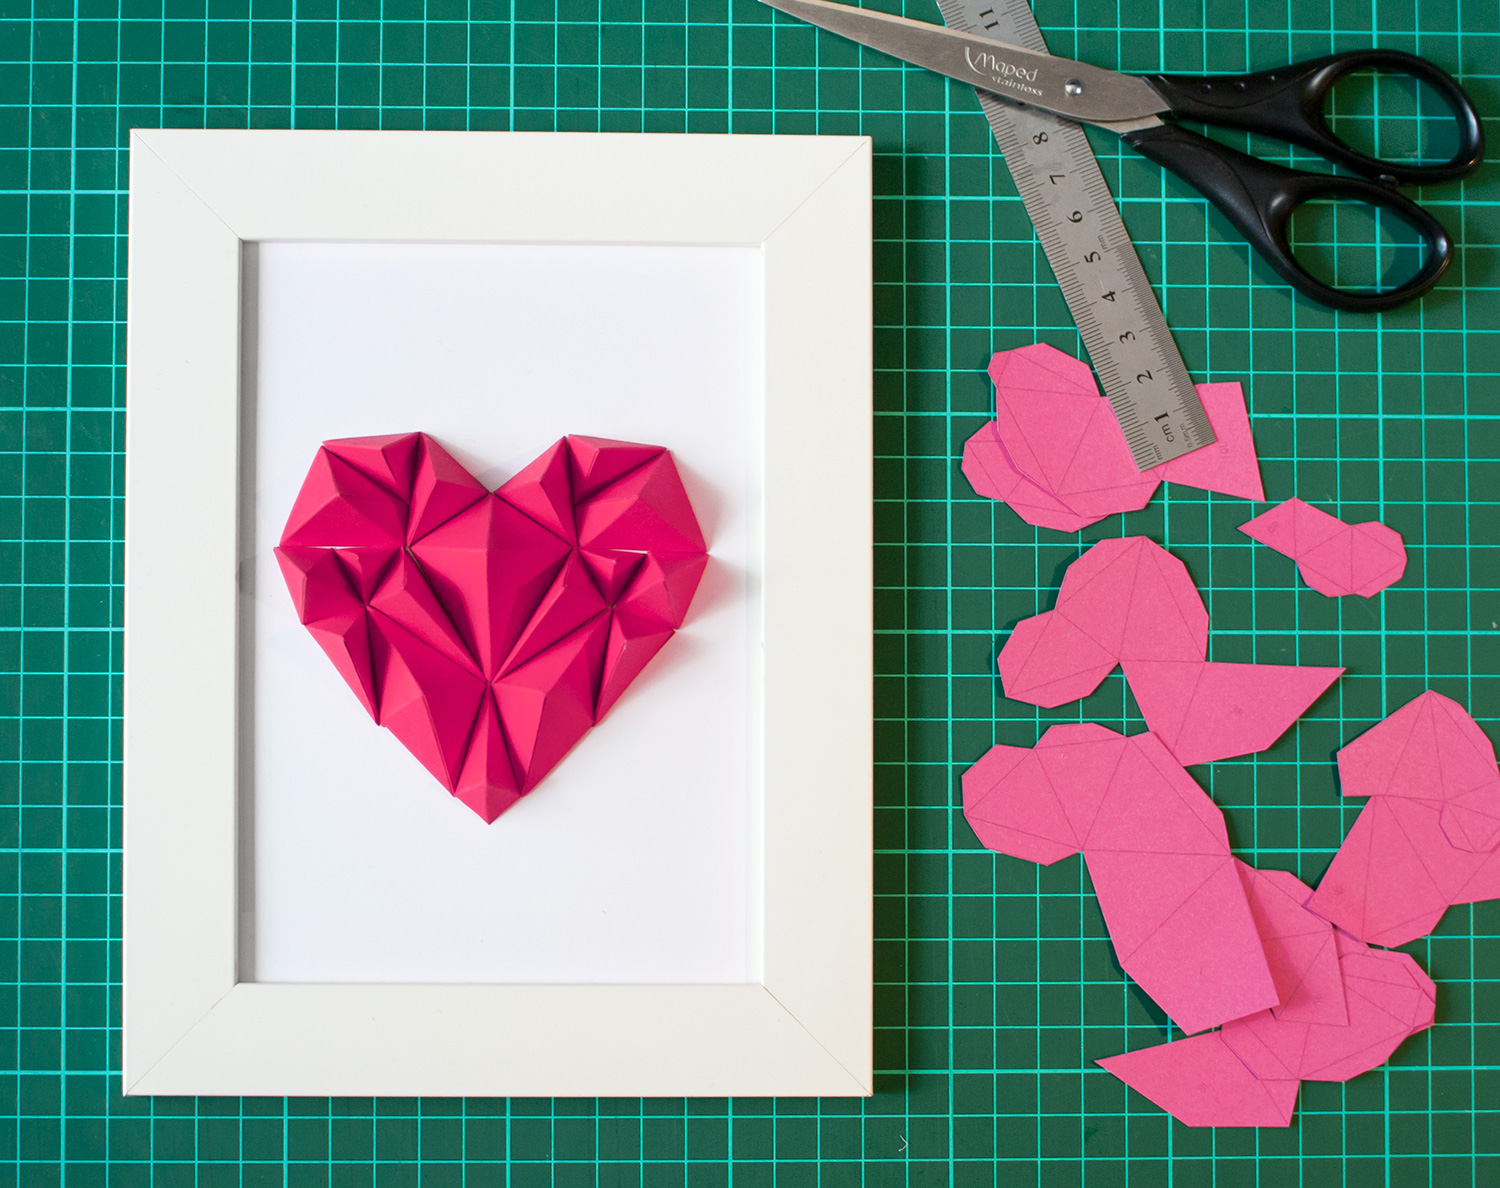 Heart_ALTAPapercraft_layout_pink.jpg